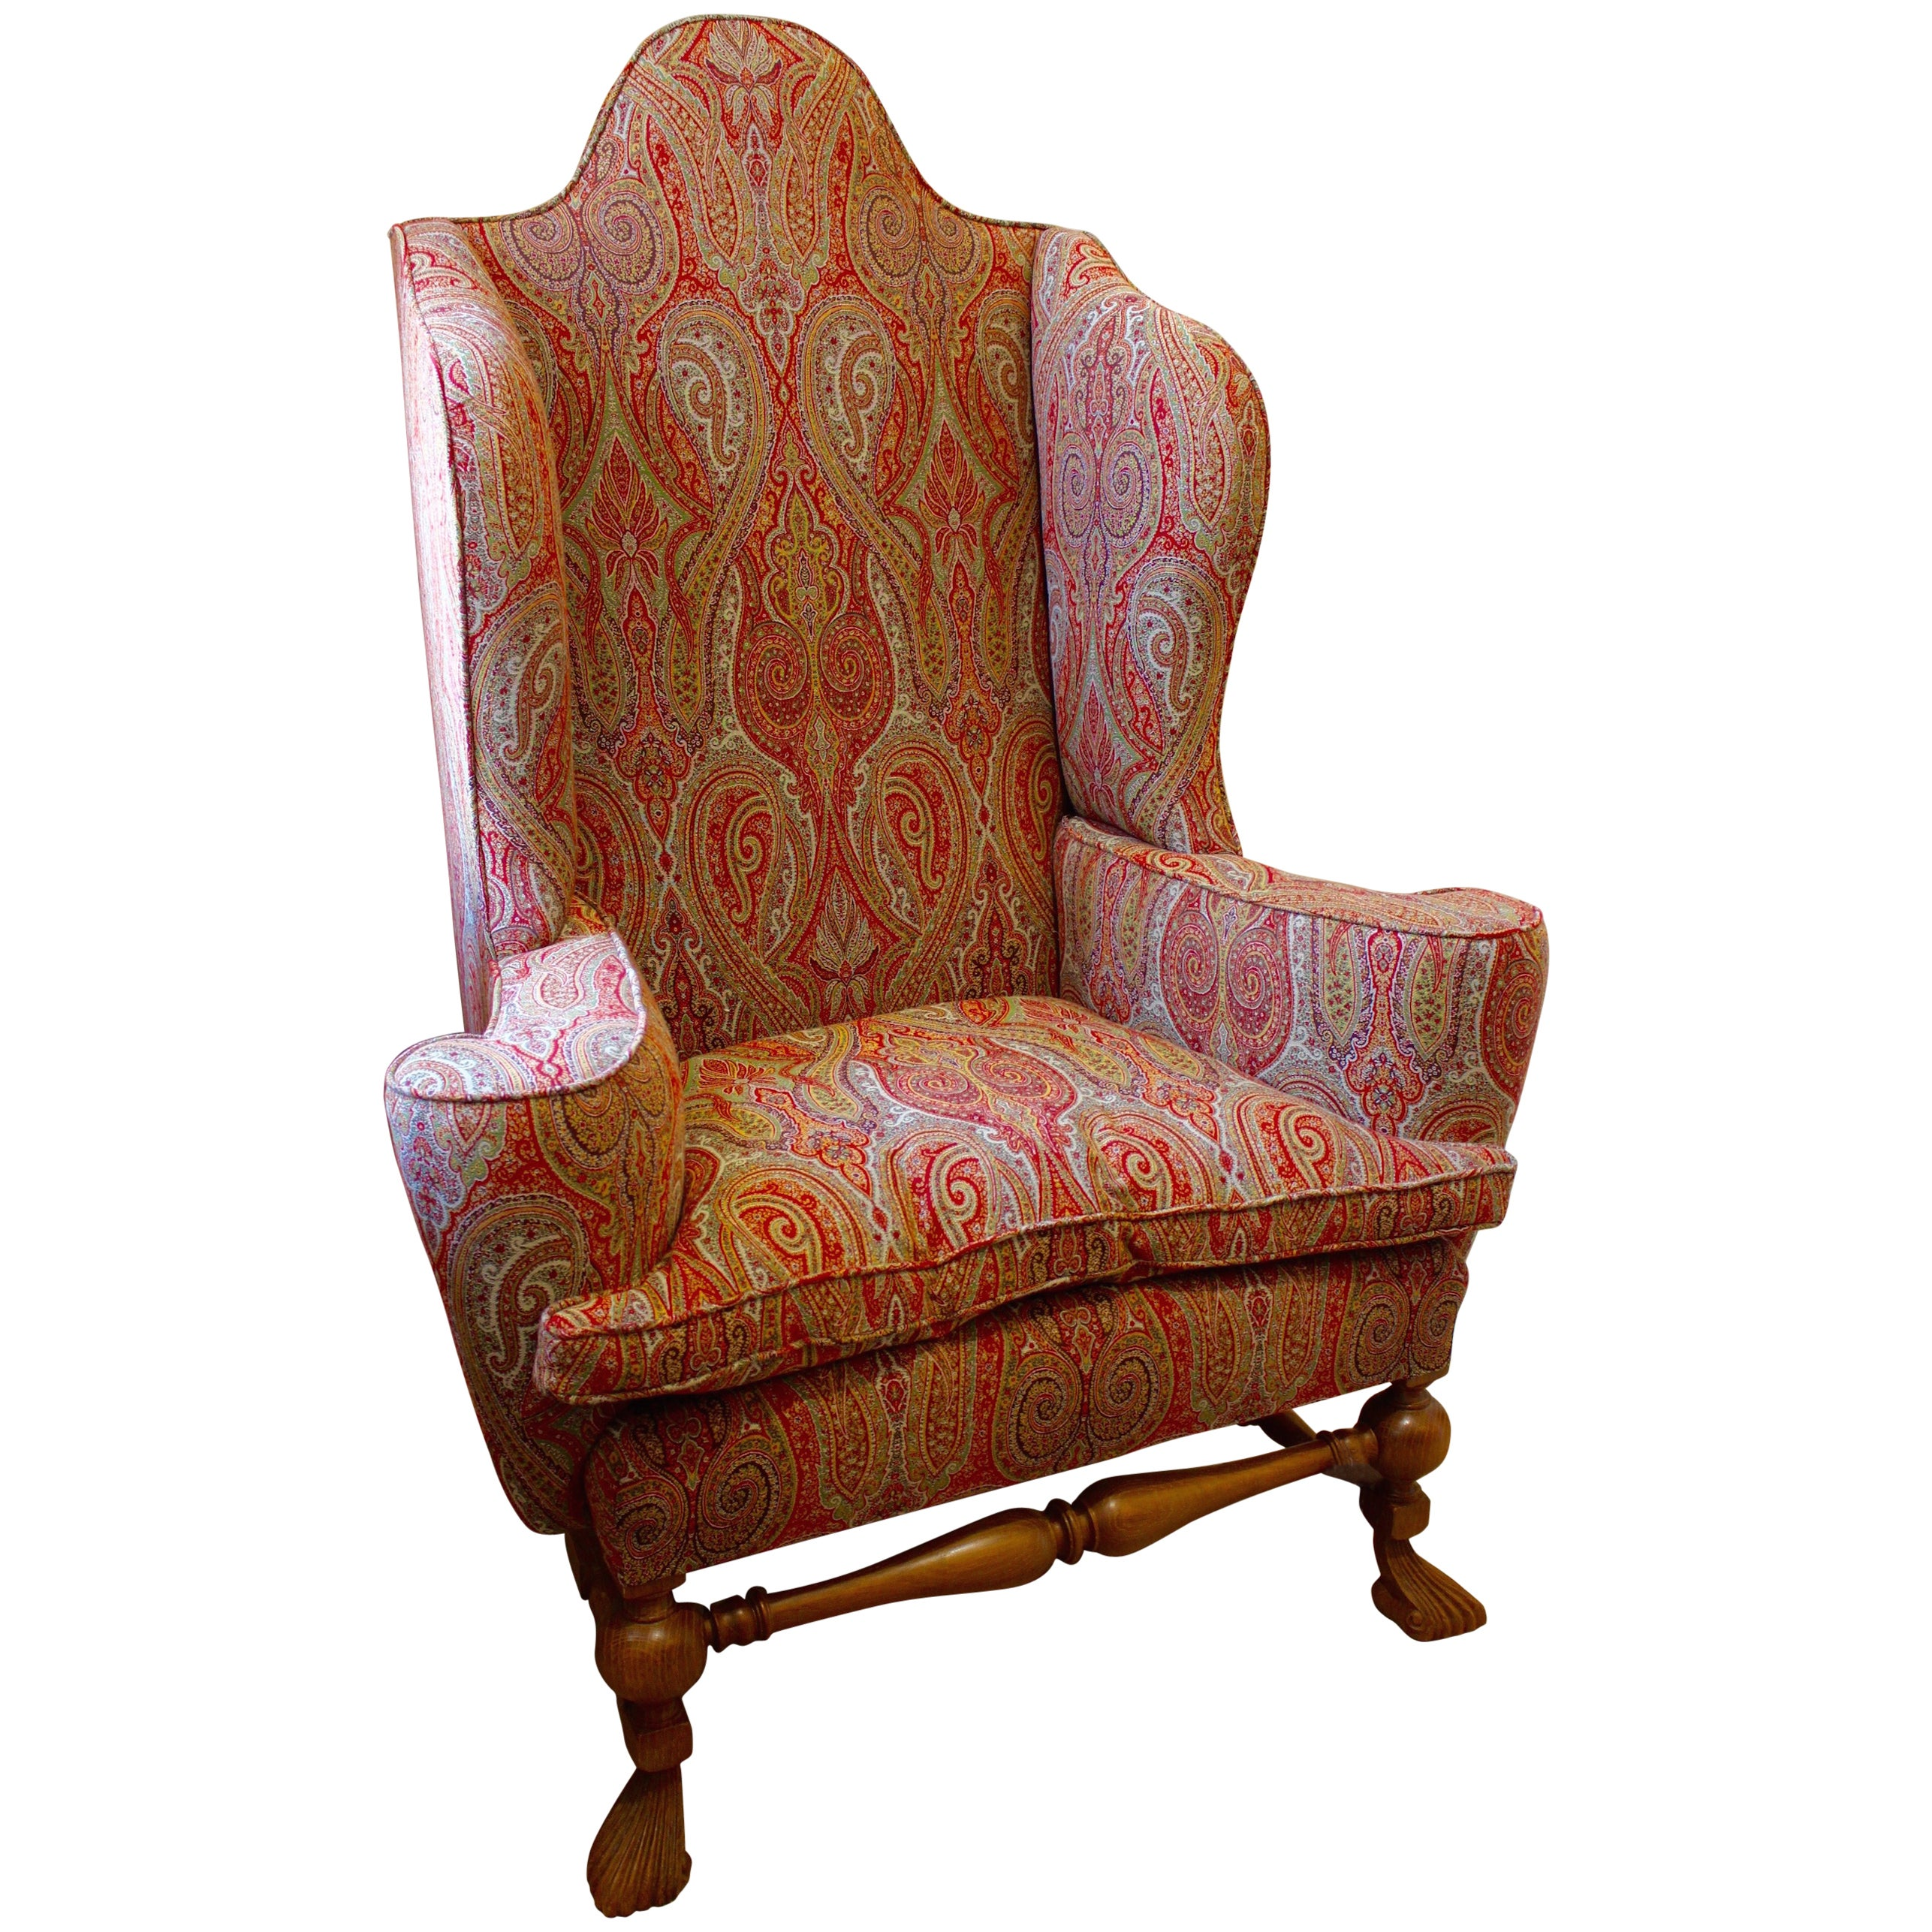 Paisley Chair William And Mary Wing Style Oak Wing Chair Upholstered In Etro Paisley